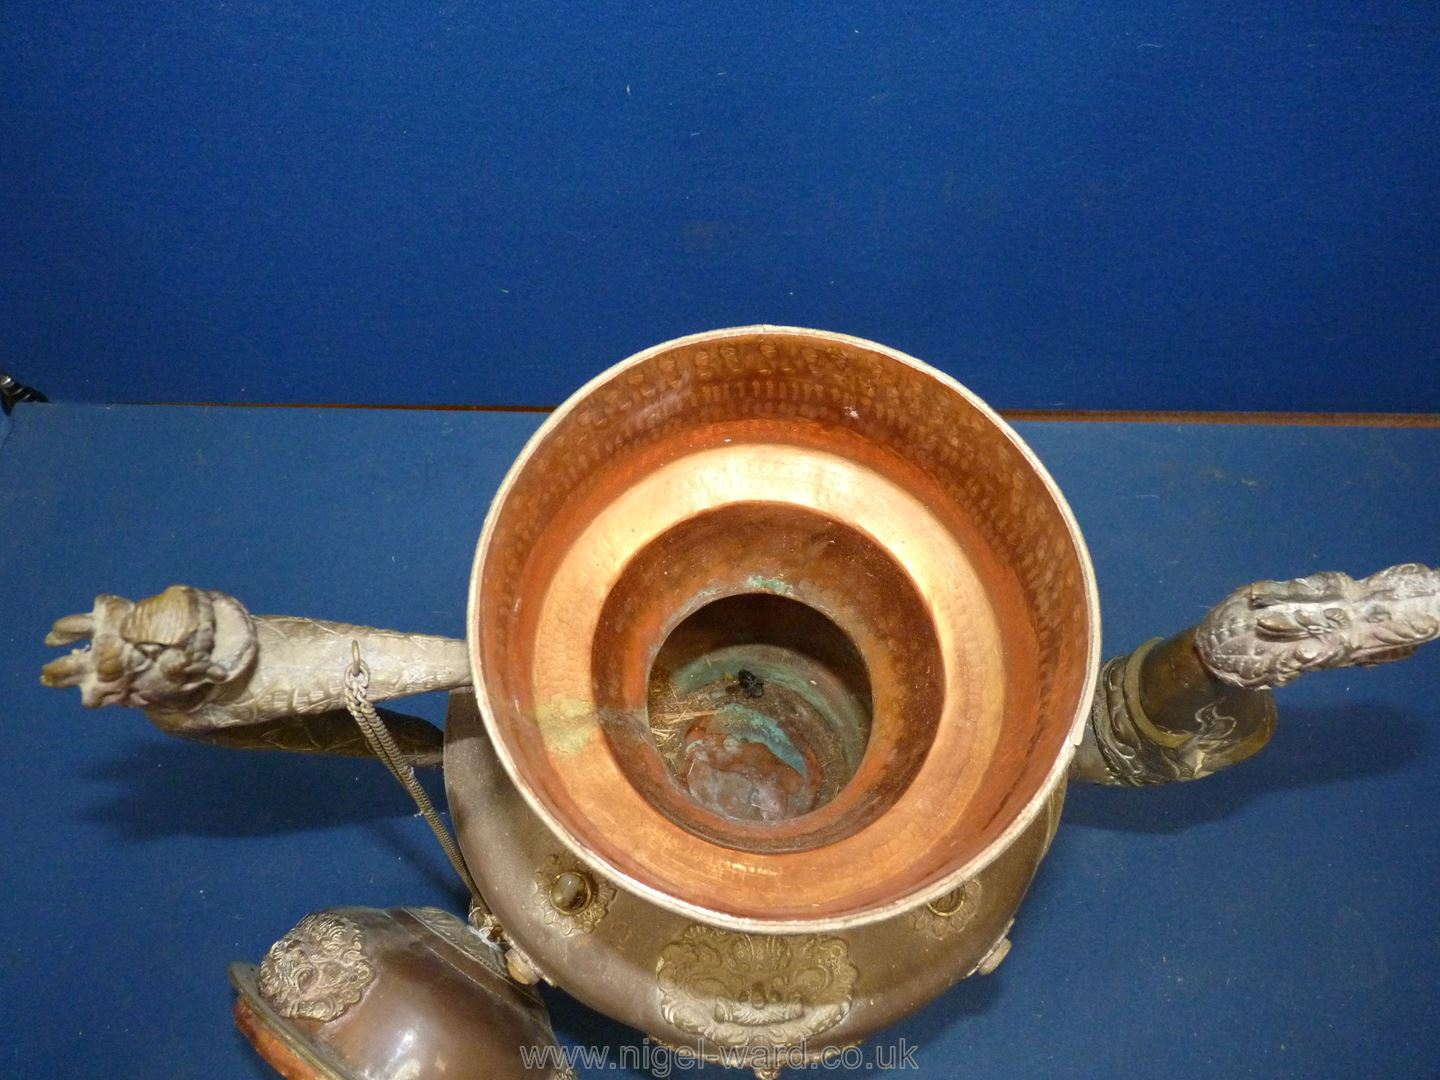 A Tibetan copper and brass ceremonial Dragon ewer with dragon handles and spout, - Image 8 of 9